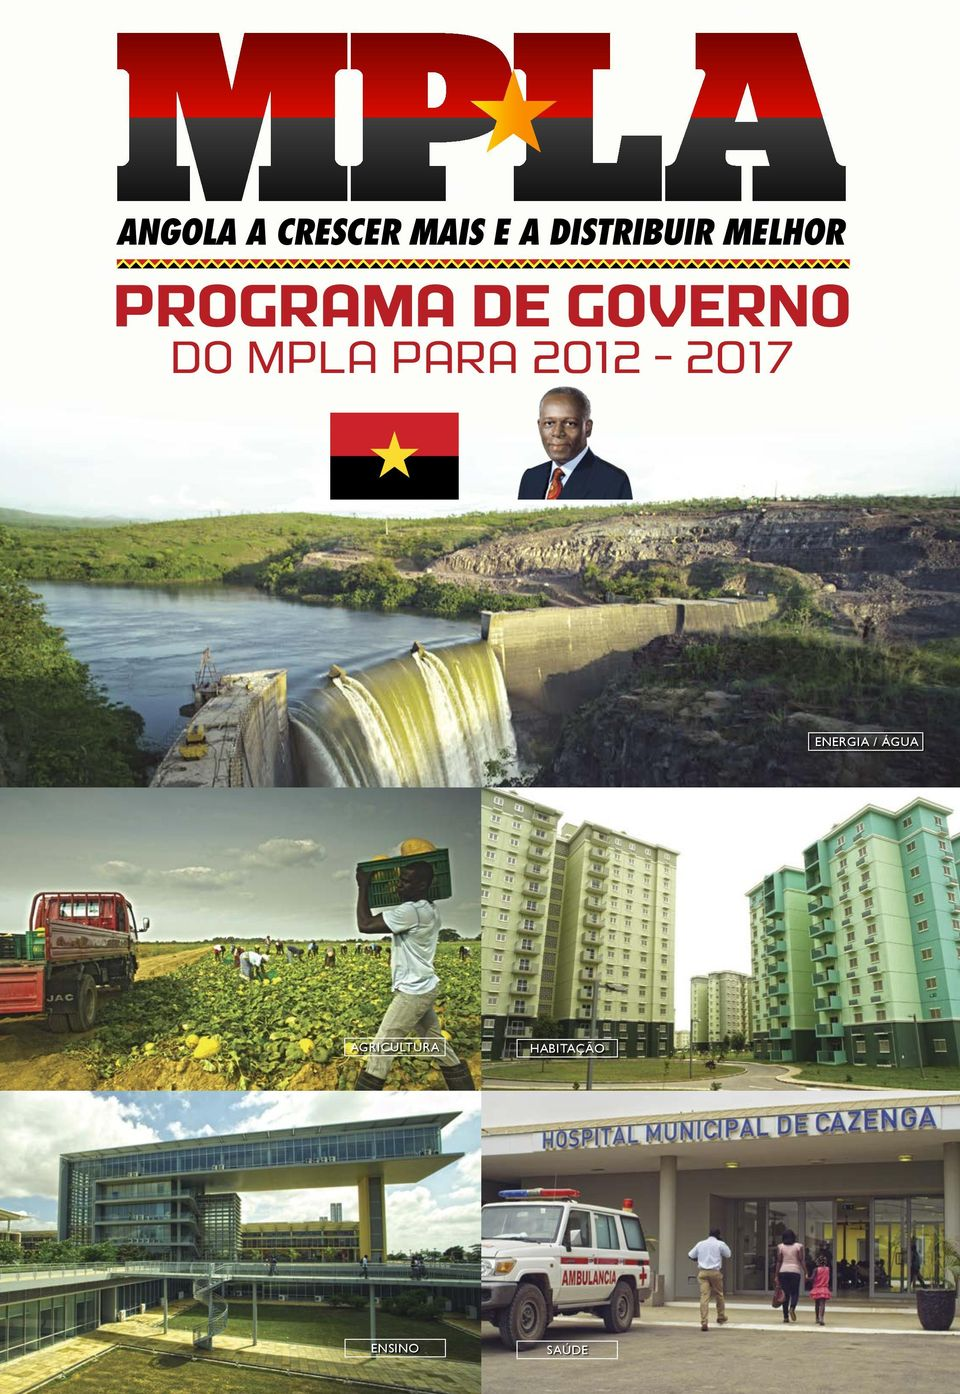 PROGRAMA DE GOVERNO DO MPLA PARA 2012-2017 Friday, April 20, 12